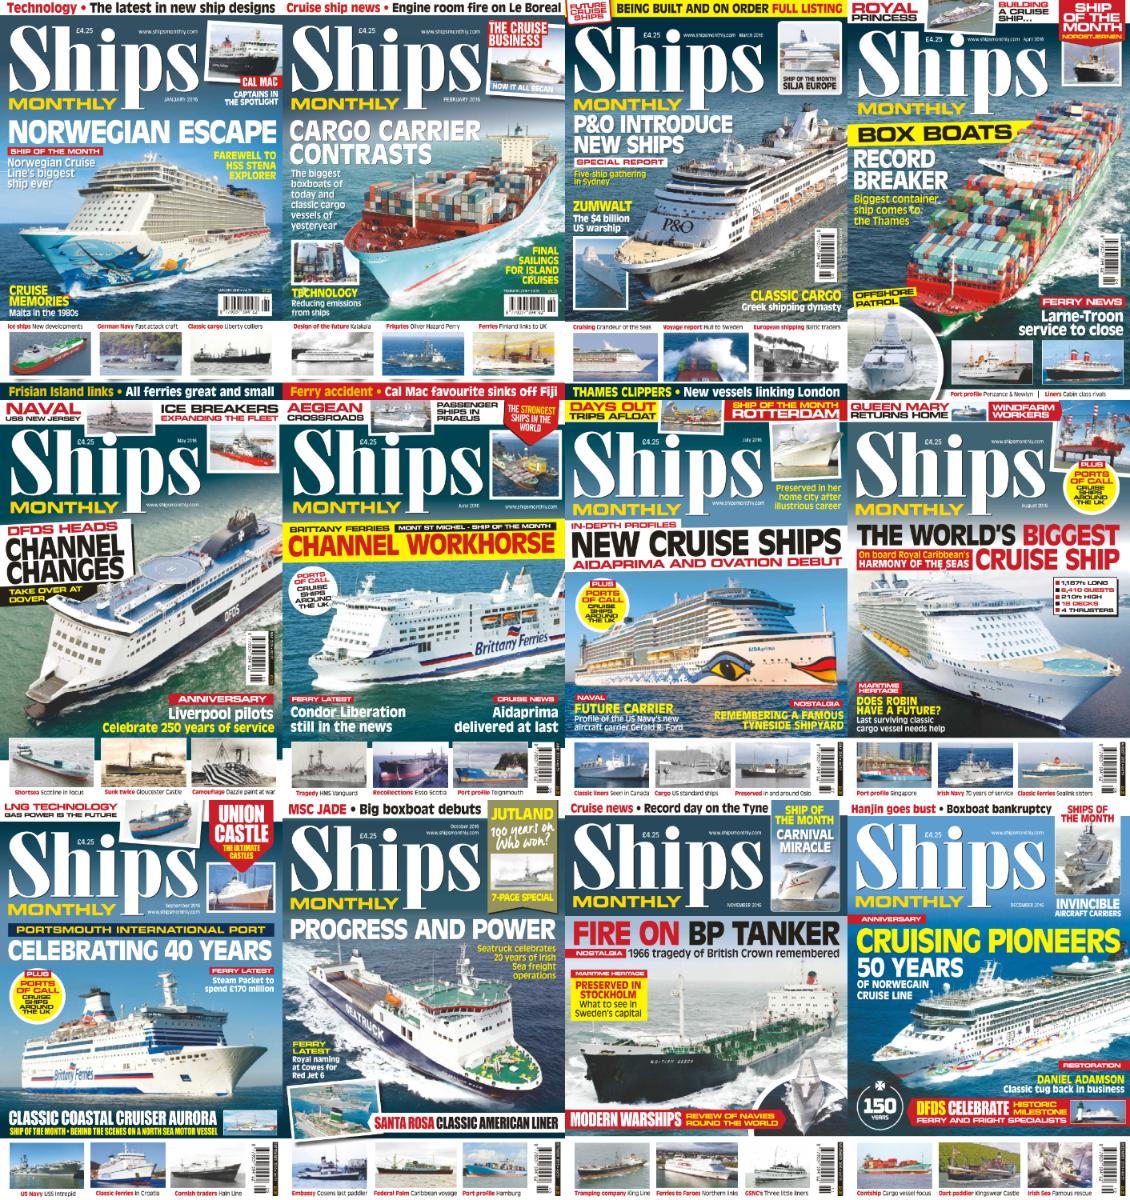 : Ships Monthly - 2016 Full Year Issues Collection